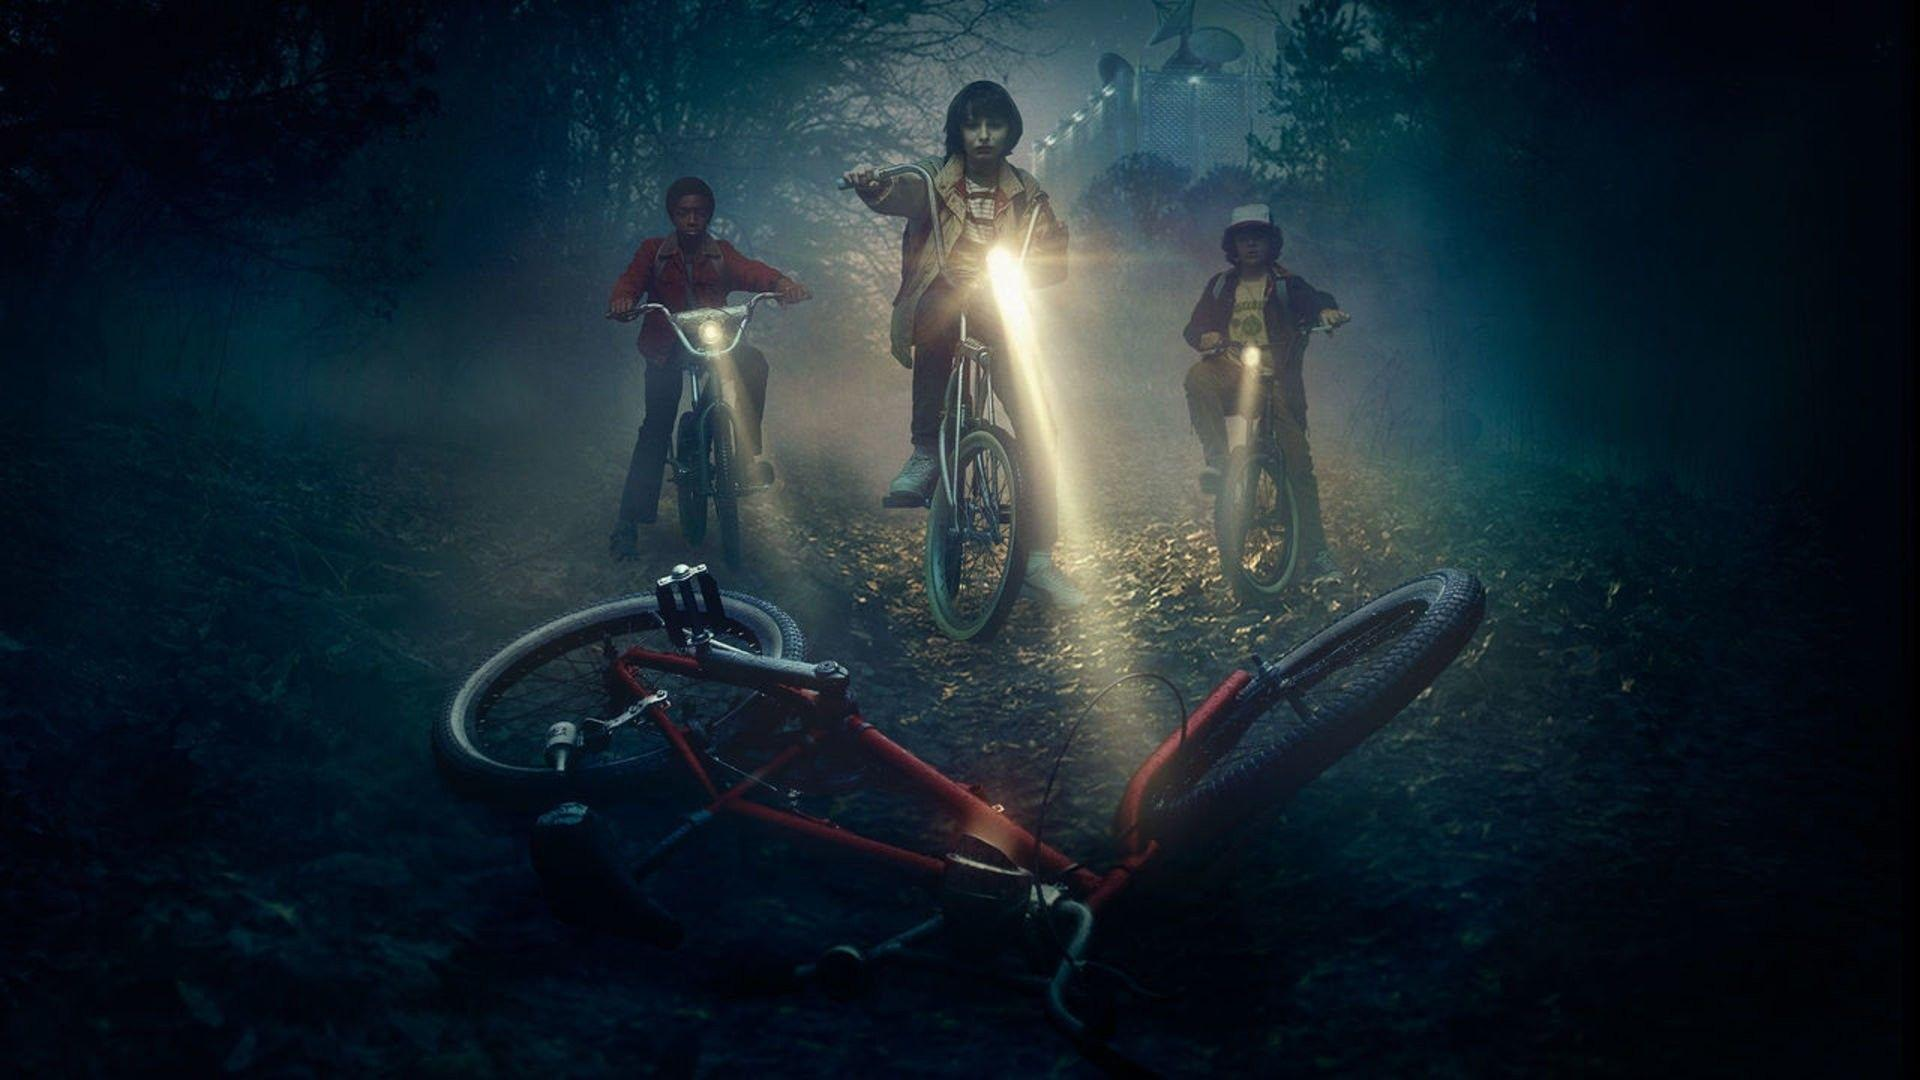 Best Stranger Things Wallpapers Movie